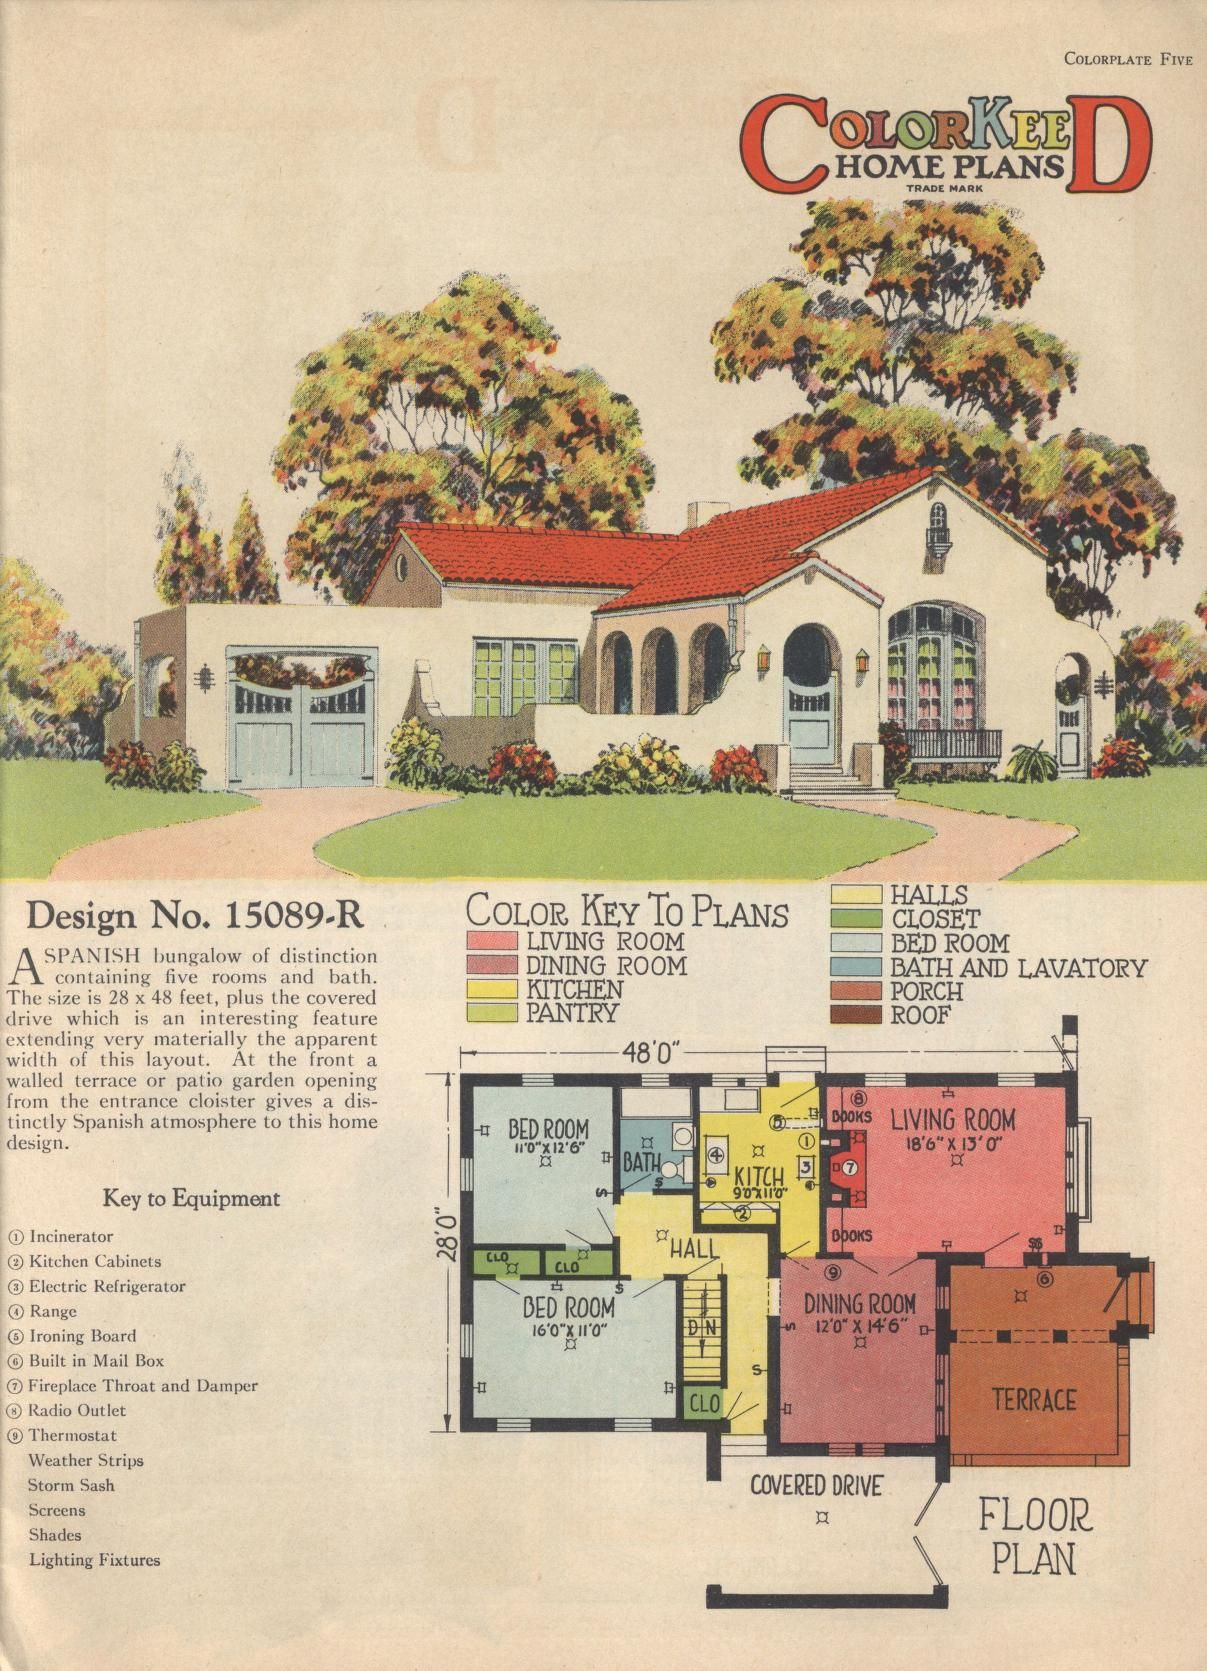 Colorkeed home plans radford 1920s vintage house plans for Spanish colonial floor plans